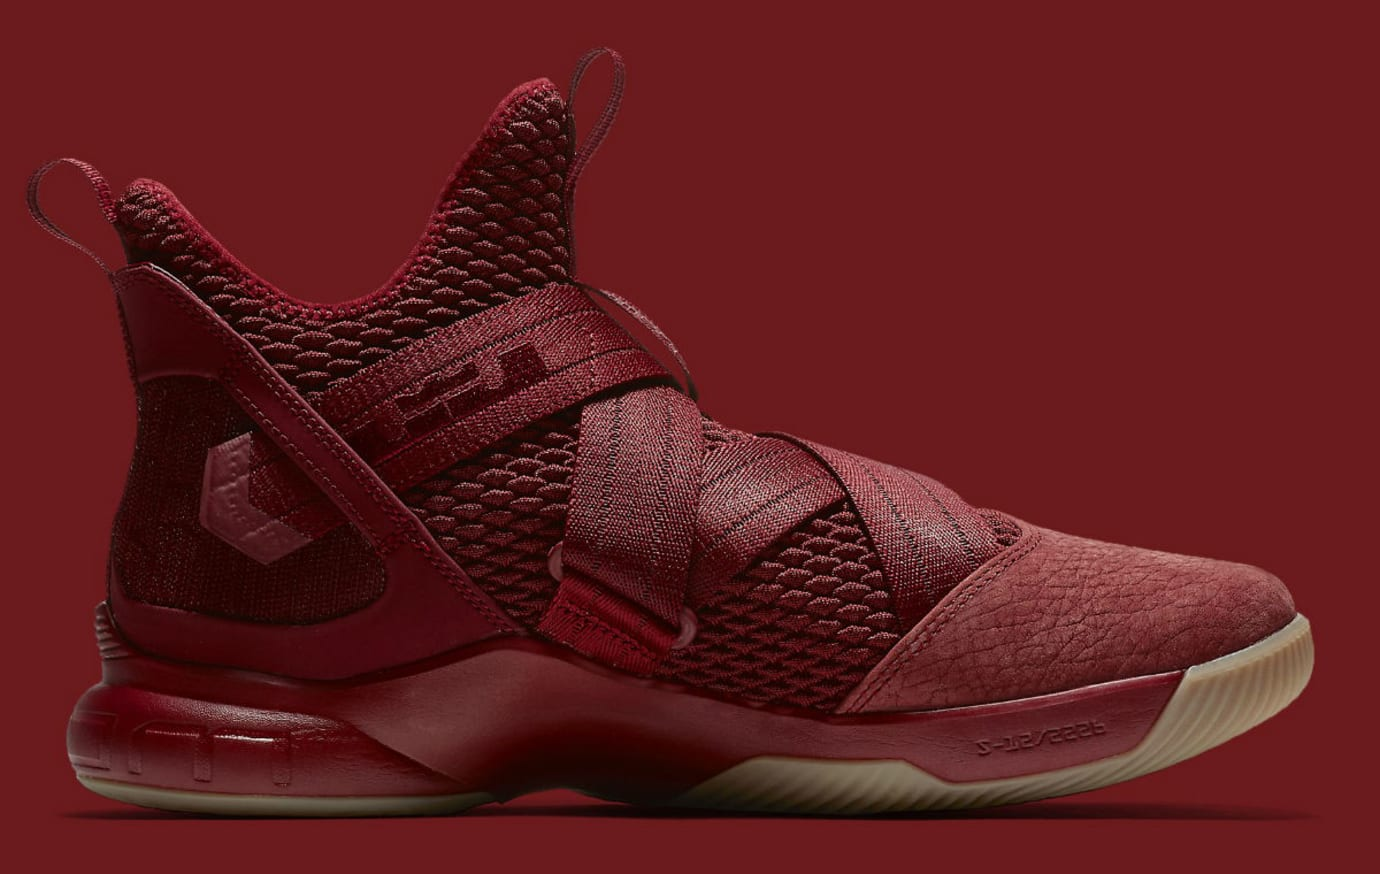 297b195b683 Image via Nike Nike LeBron Soldier 12 XII Team Red Cavs Release Date  AO4055-600 Medial